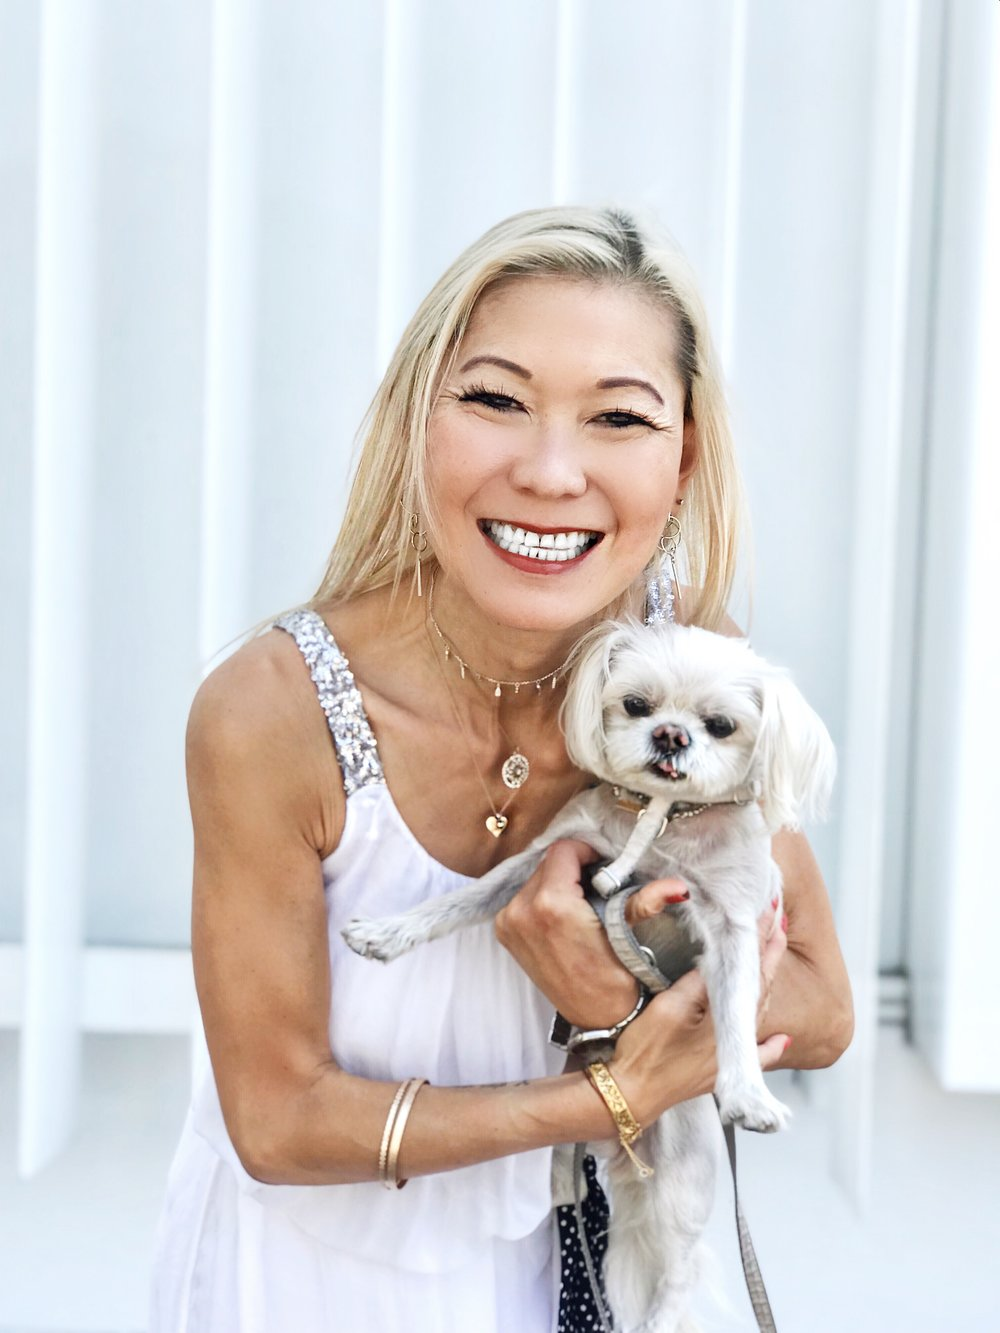 Shana Lynn Yao, brand strategist, DOG Round table